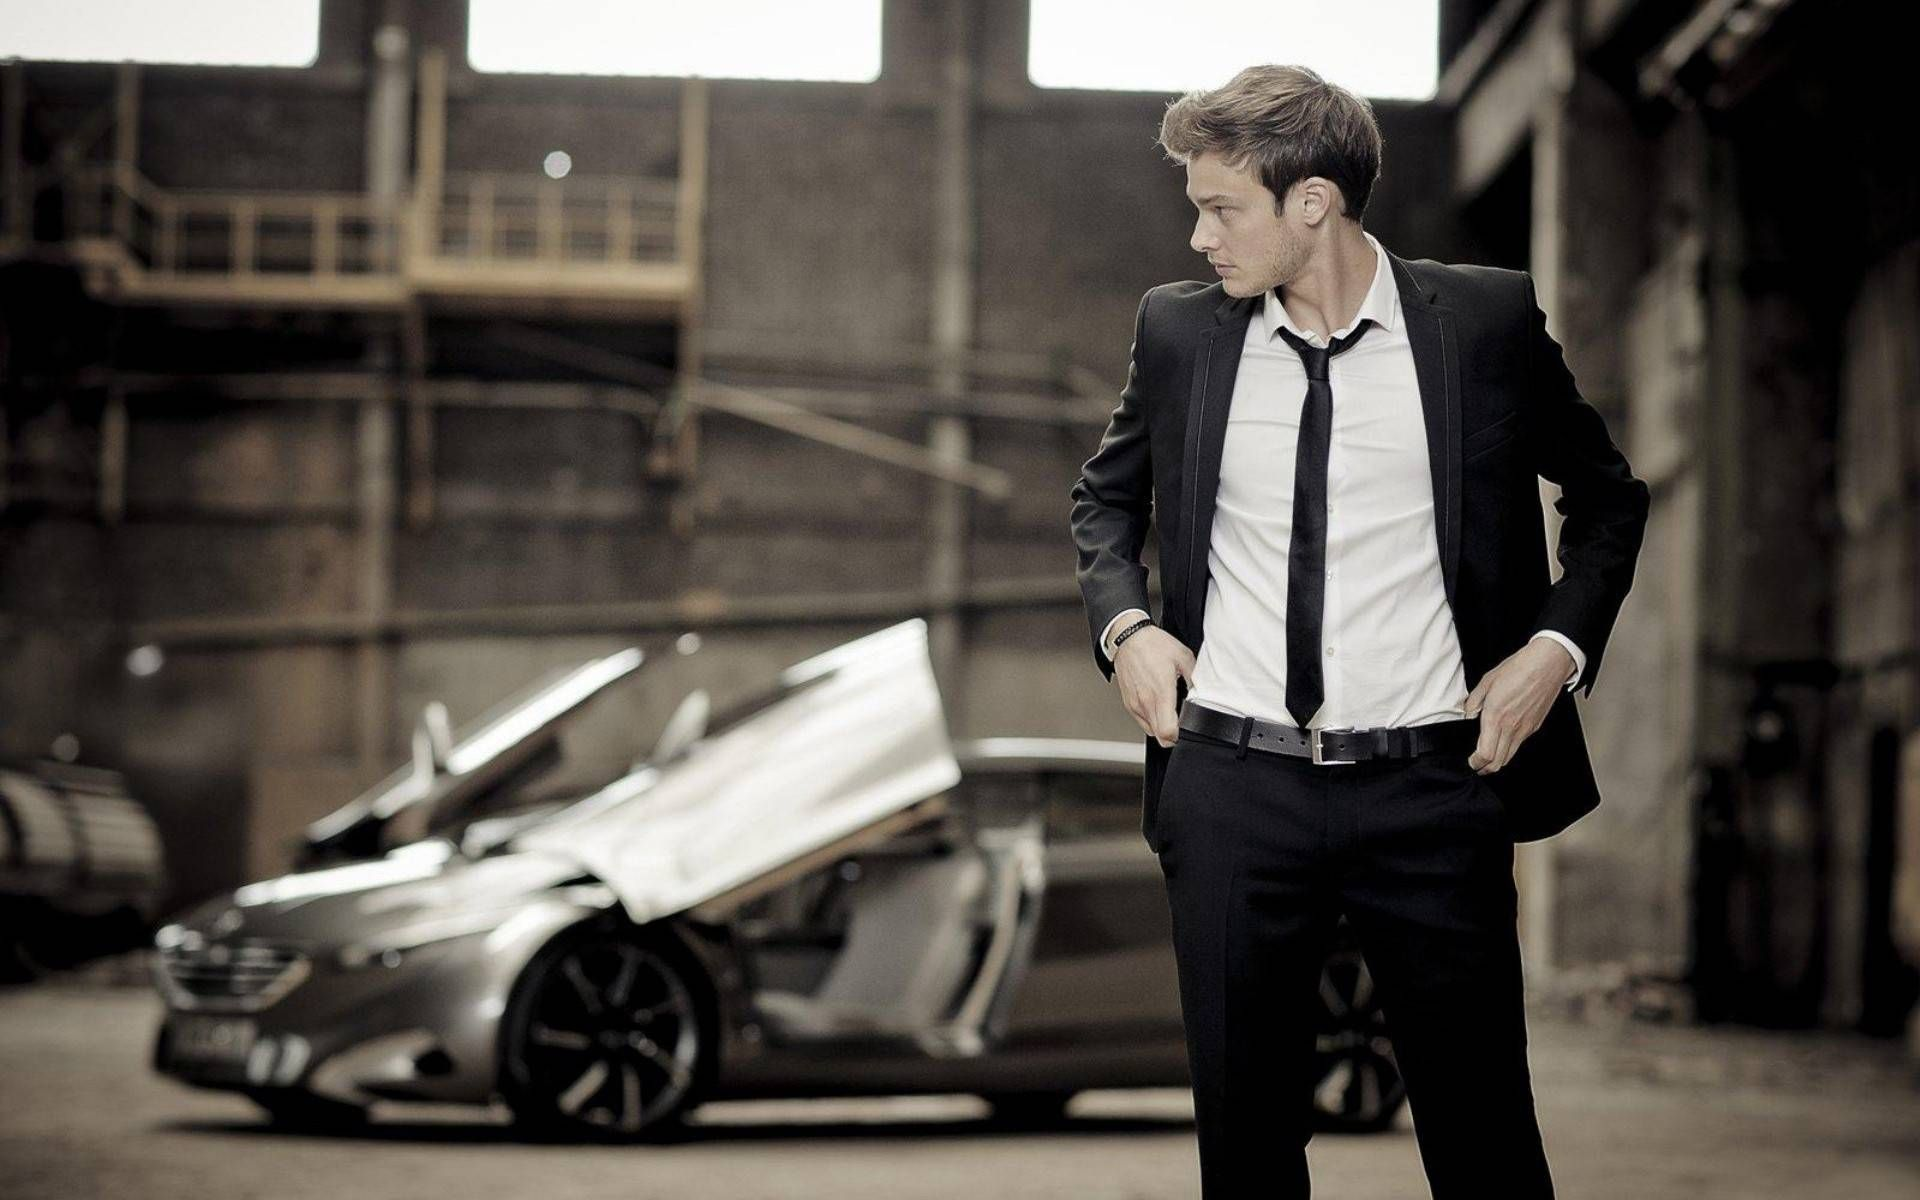 Man Car Photoshoot Google Search Classy Suits Car Guys Photoshoot